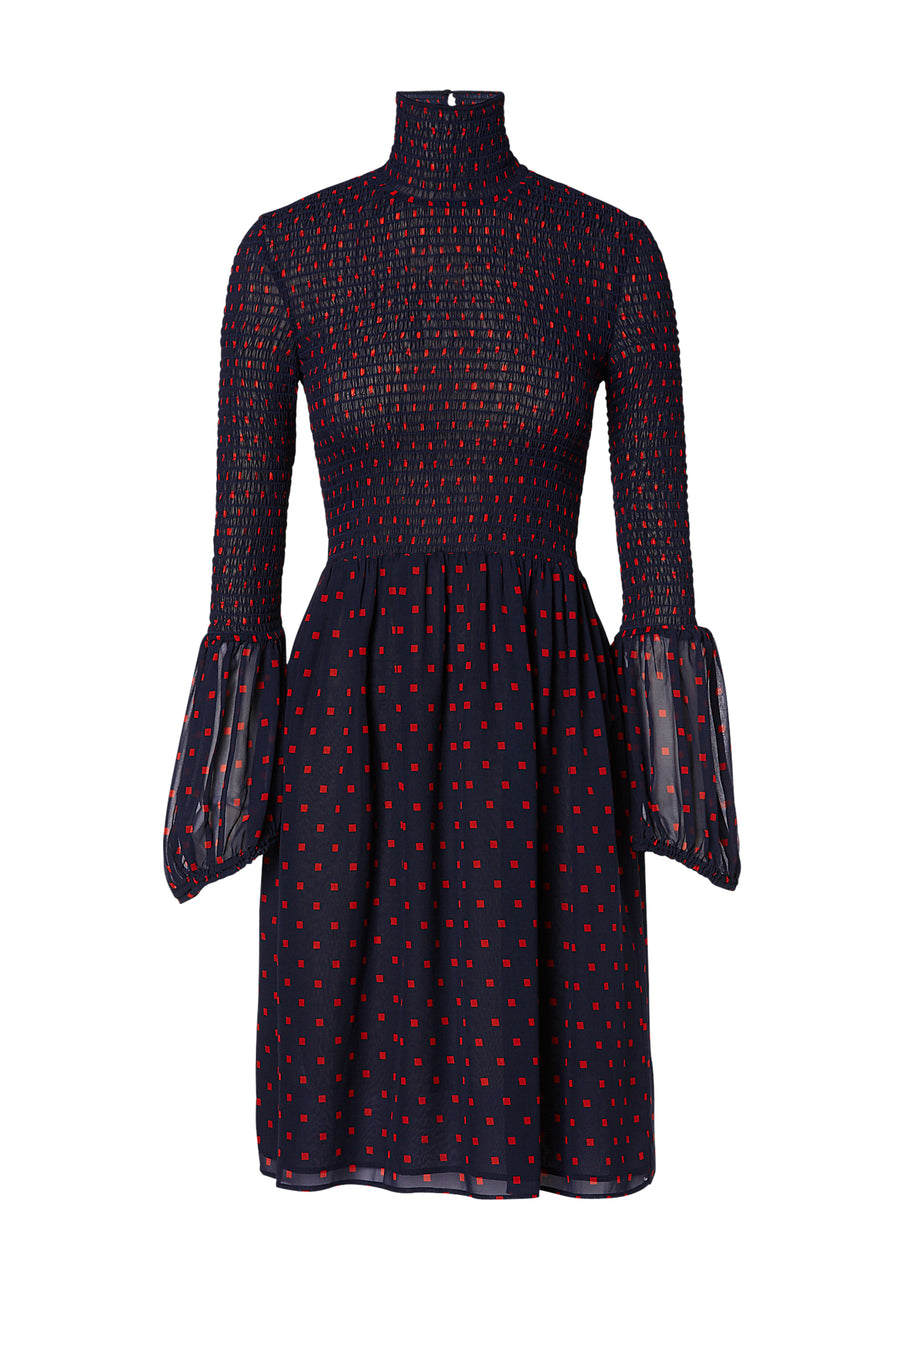 Silk Printed Shirred Dress, 100% silk with a spot print, high neck, peplum cuffs, elasticized slim fit at bust, full skirt from the hip to just above knee, color navy